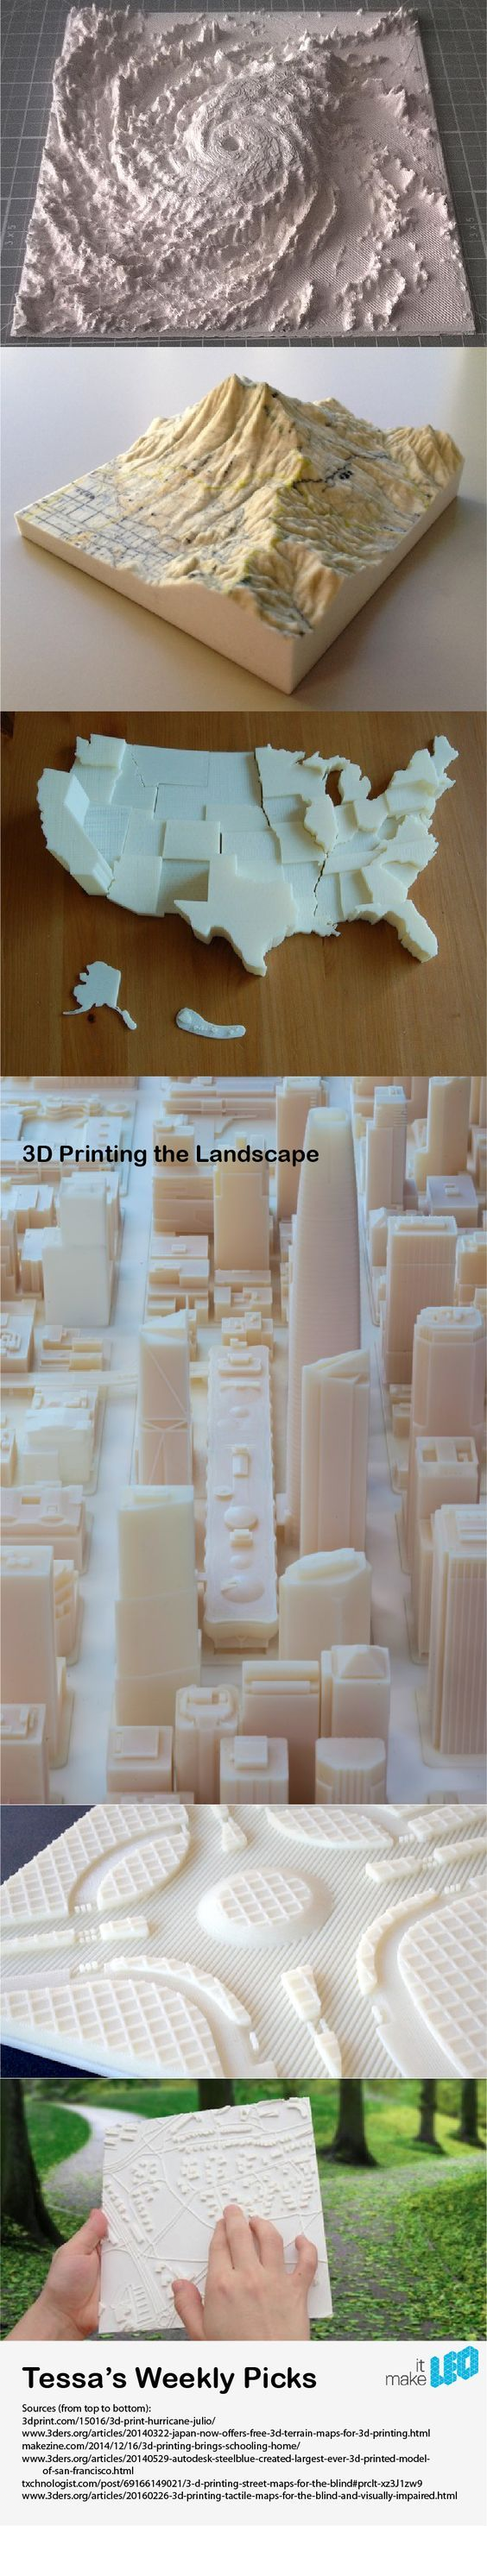 Tessa's Picks - 3D Printing the Landscape - Make it LEO